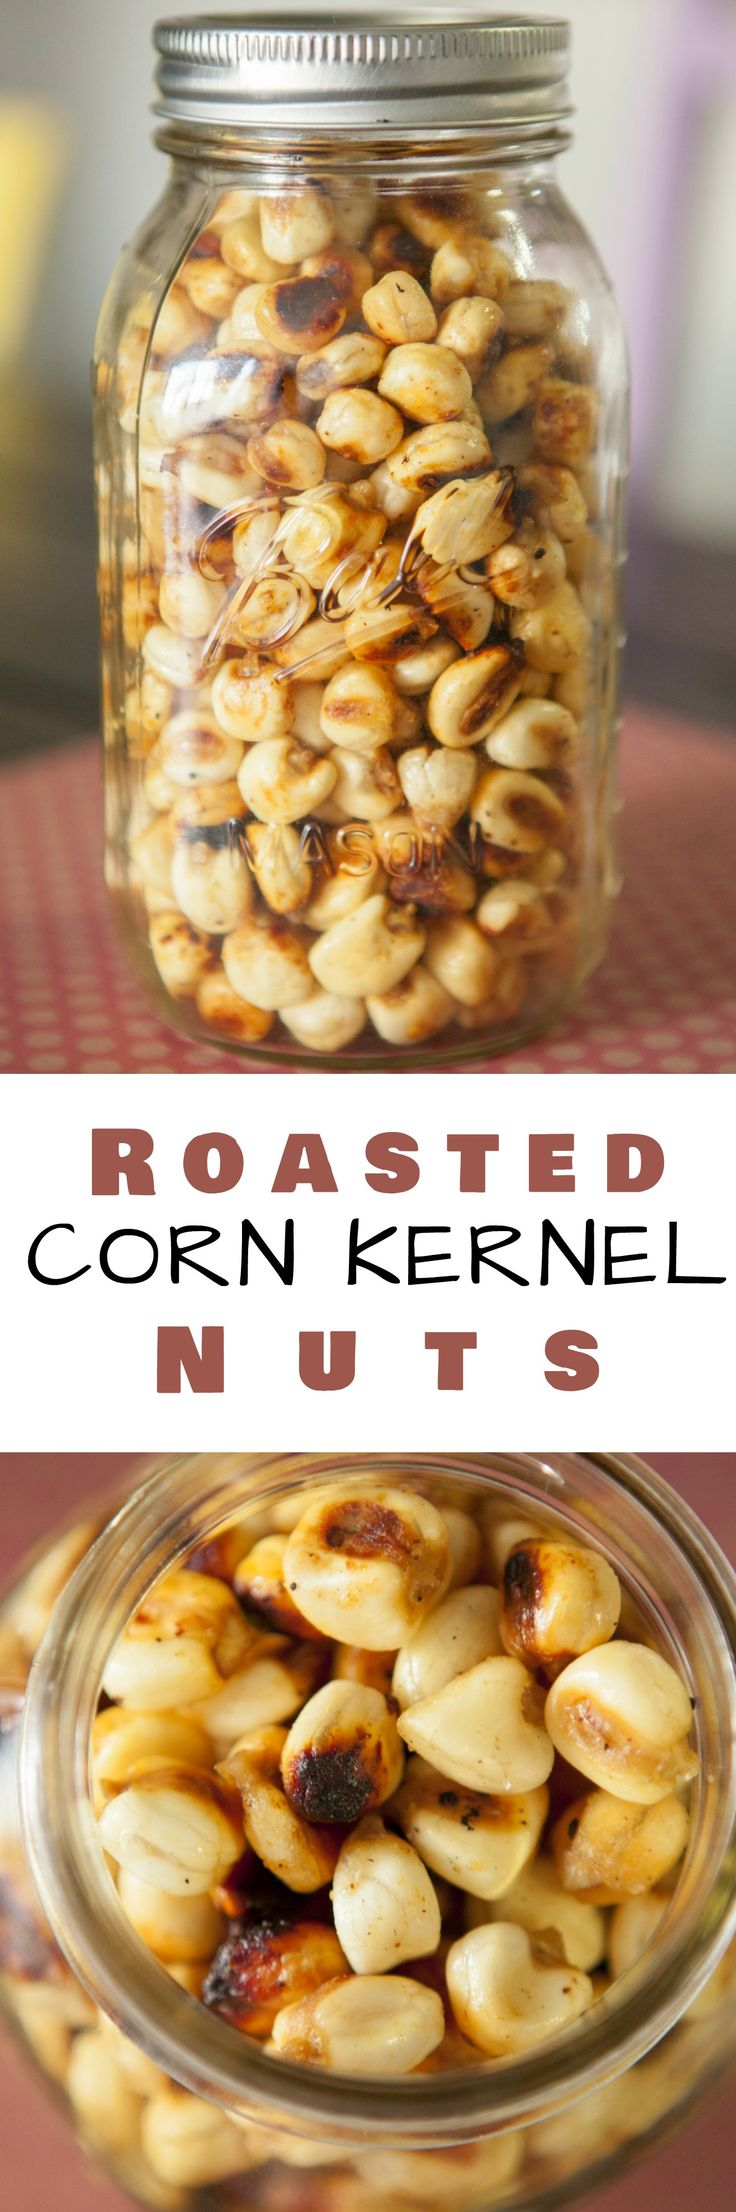 Now you can make Roasted Corn Kernel Nuts at home!  This is a delicious and easy to make recipe!